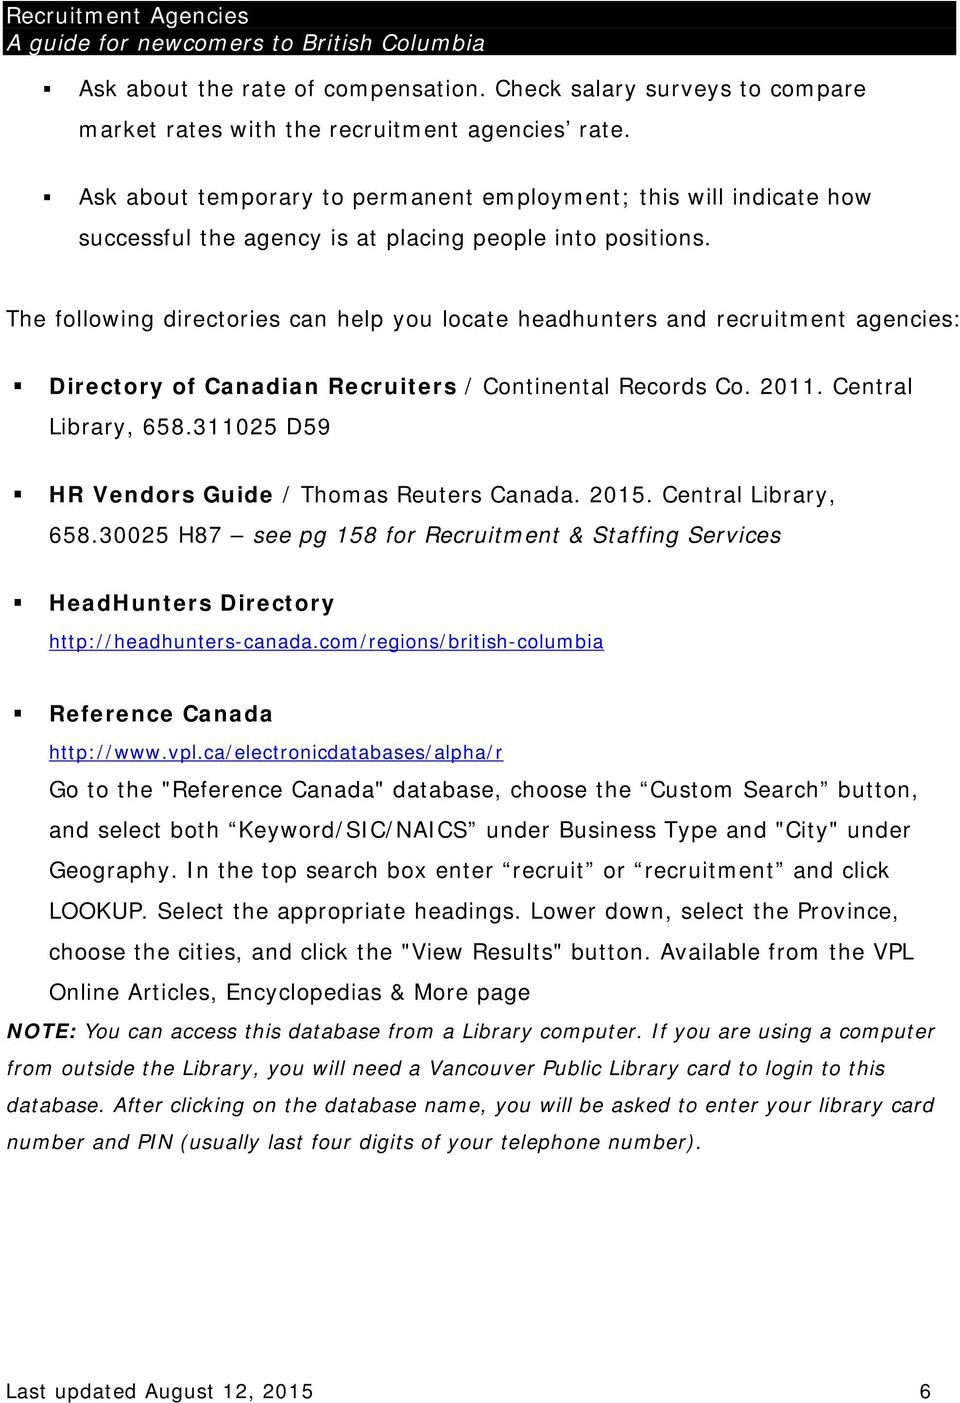 The following directories can help you locate headhunters and recruitment agencies: Directory of Canadian Recruiters / Continental Records Co. 2011. Central Library, 658.